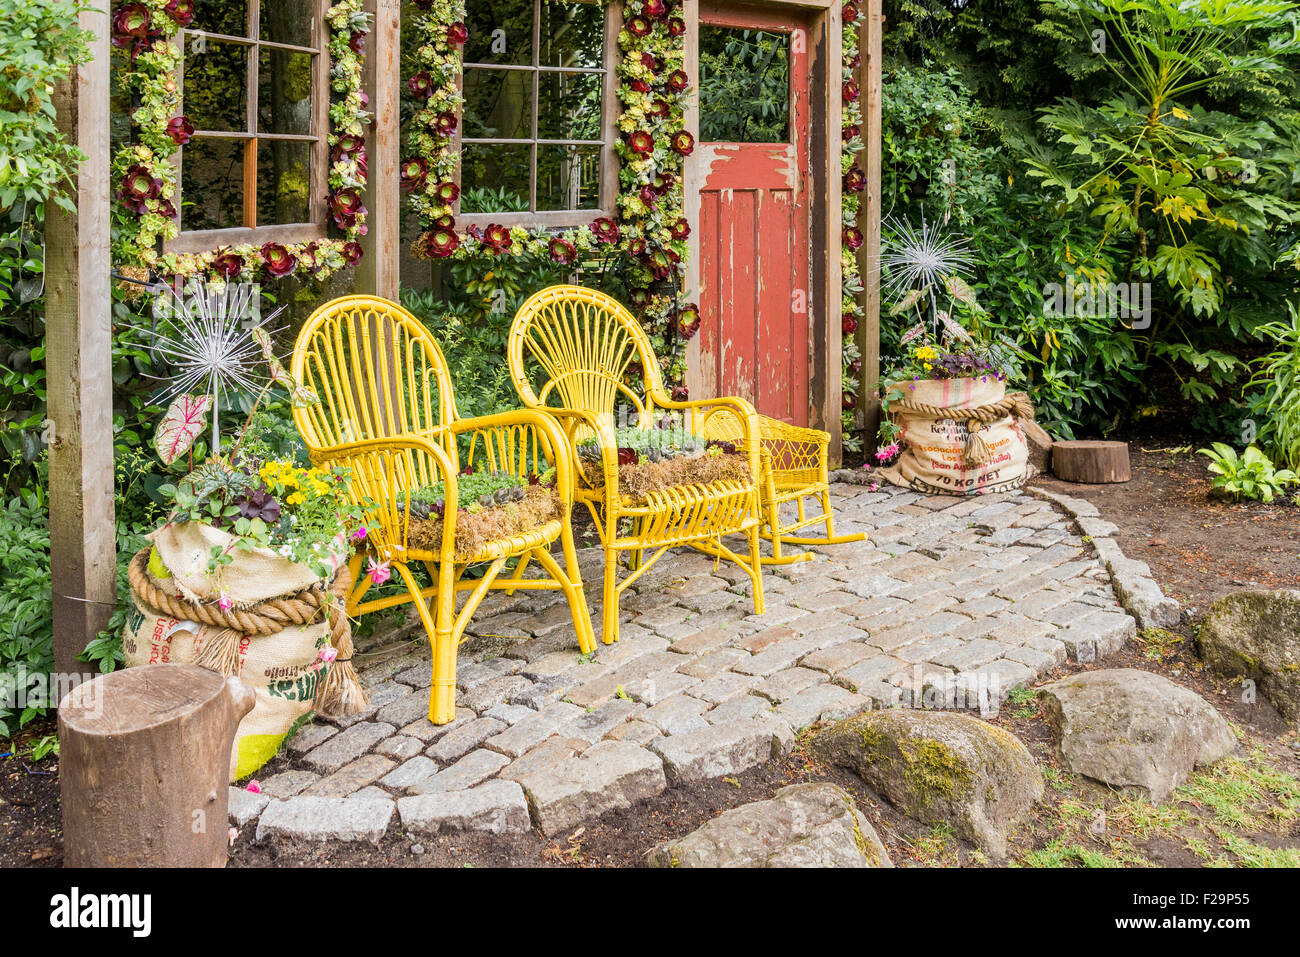 Garden display with rattan chairs as planters - Stock Image